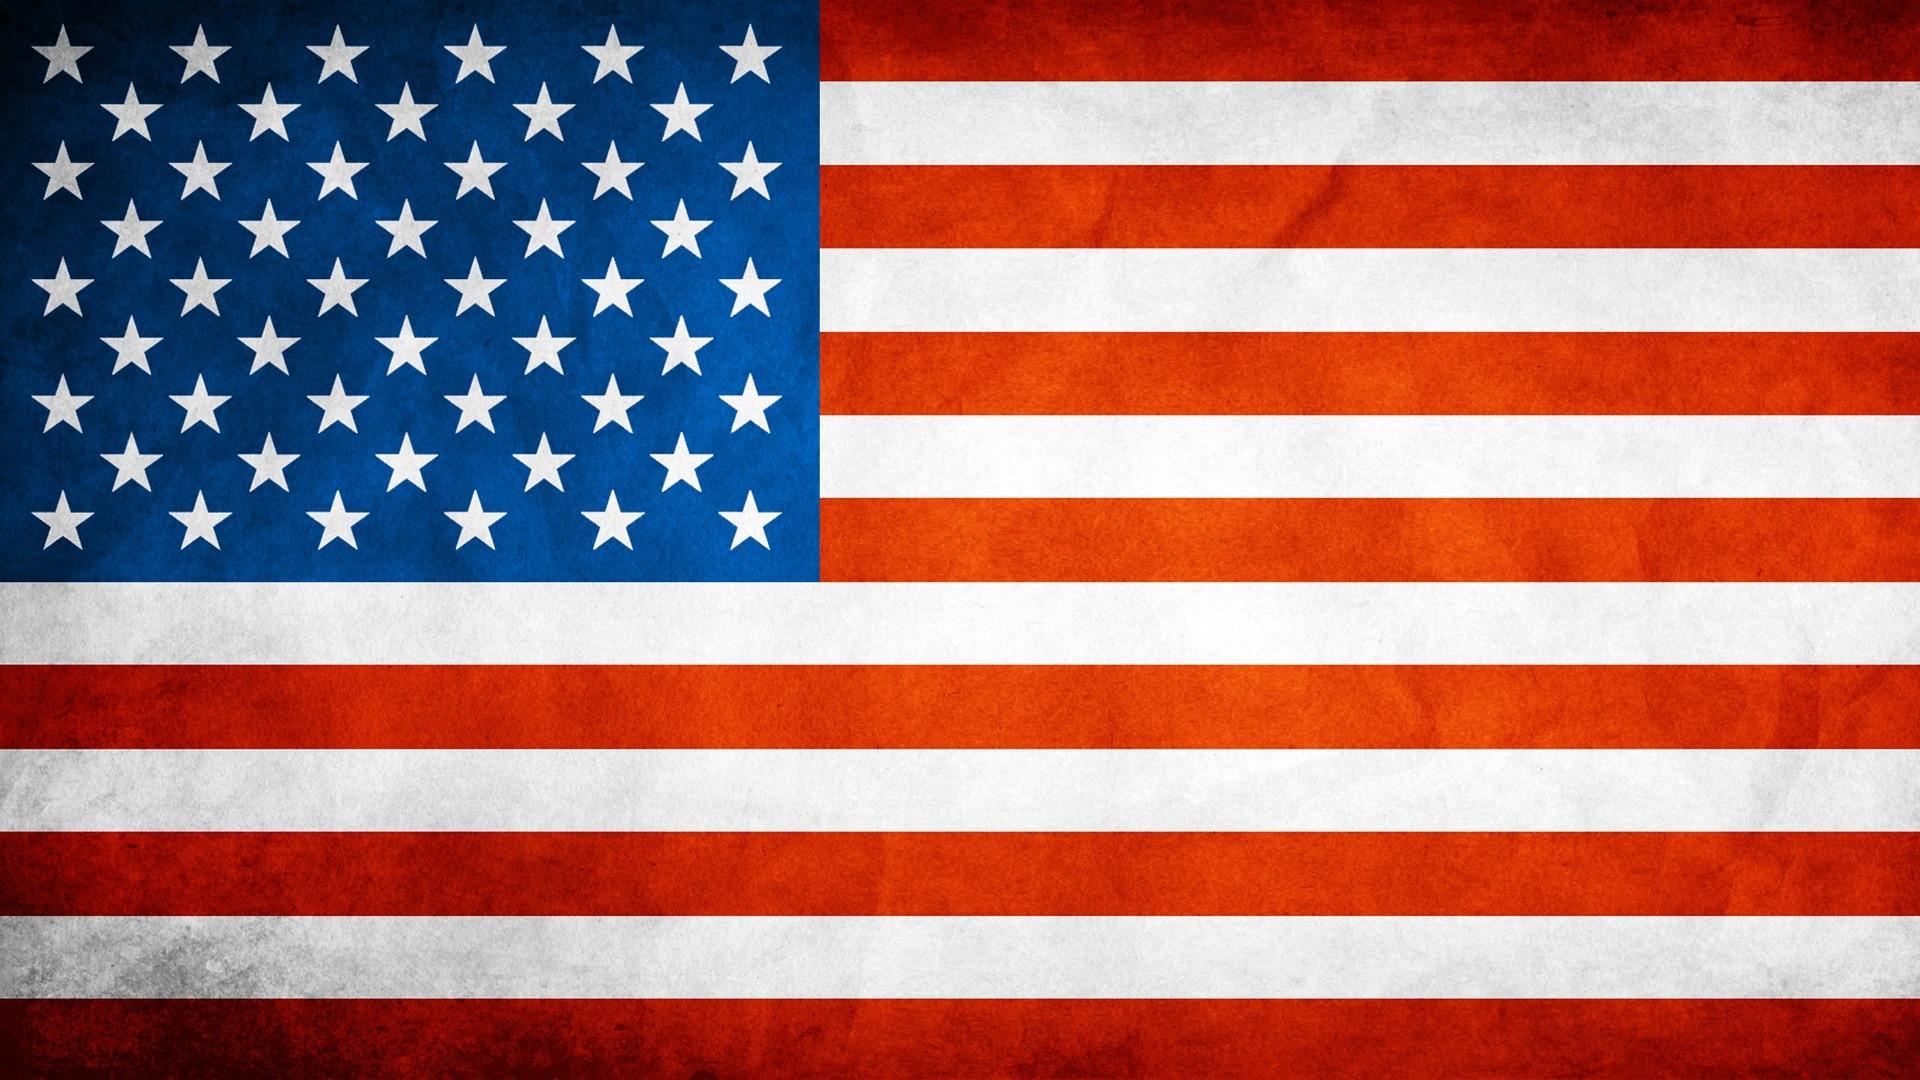 Usa flag wallpaper hd wallpapersafari Hd usa